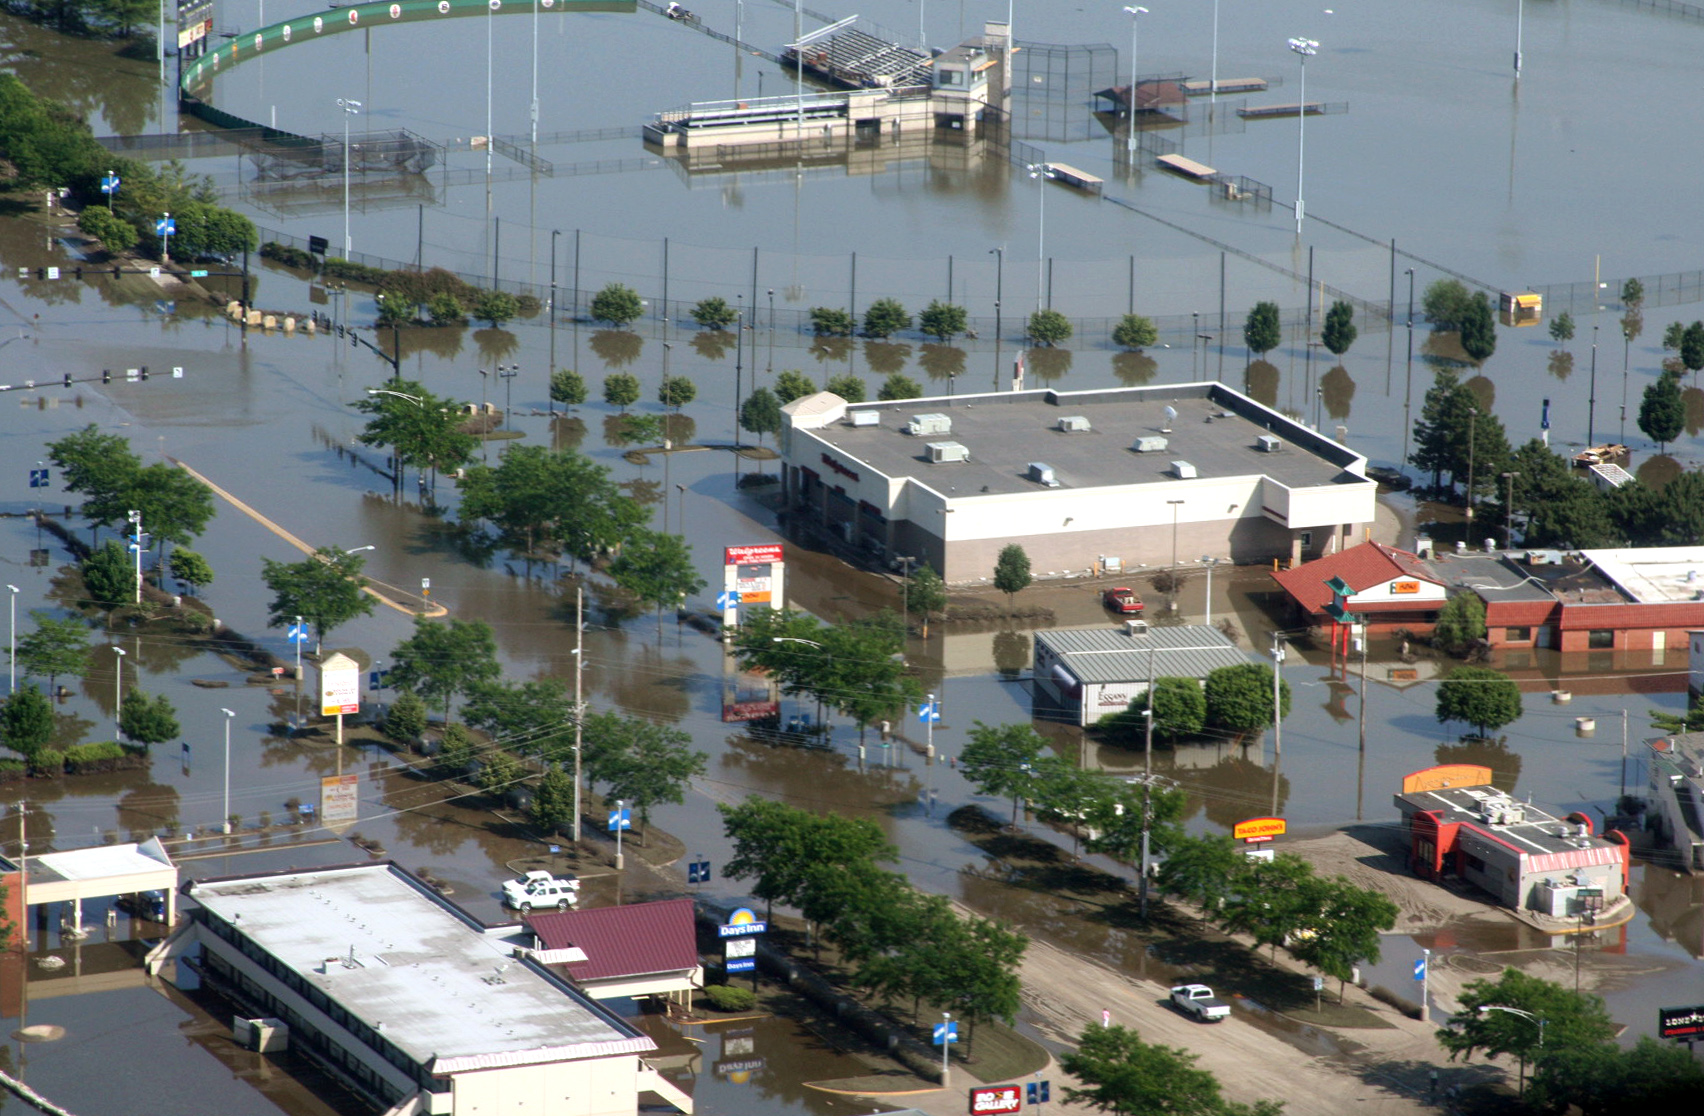 Water Damage Commercial Insurance Claim Adjusters International Basloe, Levin and Cuccaro